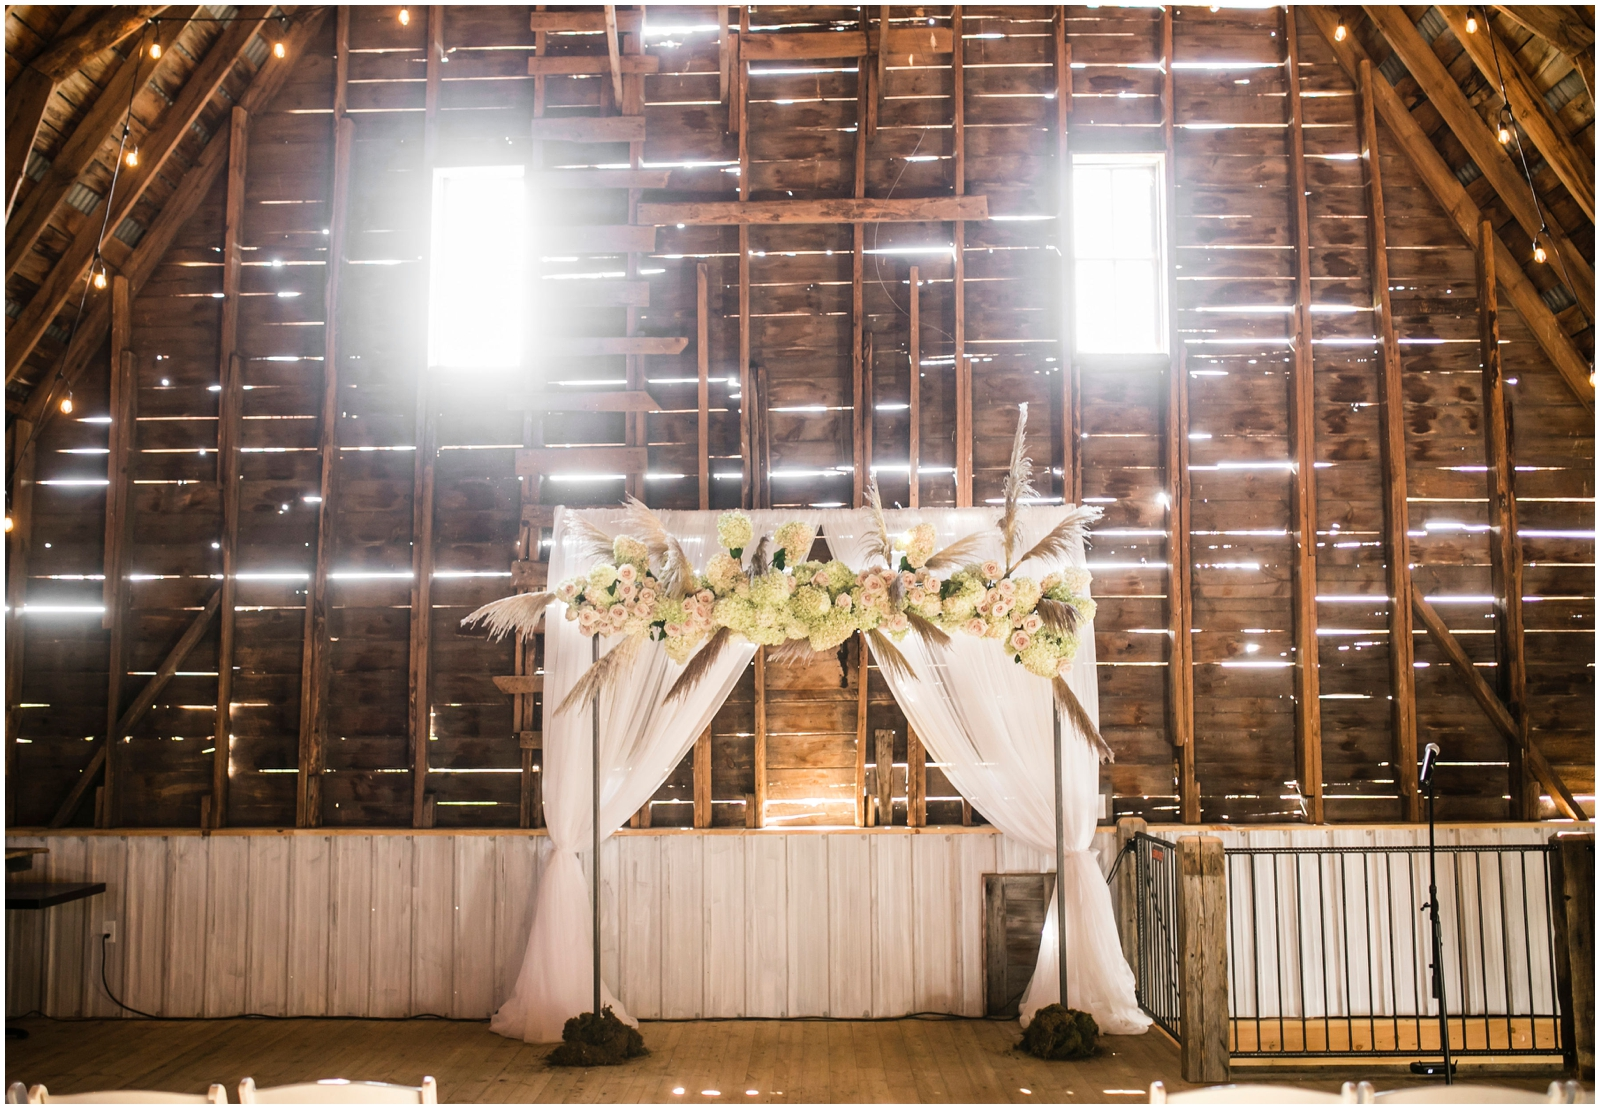 Wedding arch for ceremony